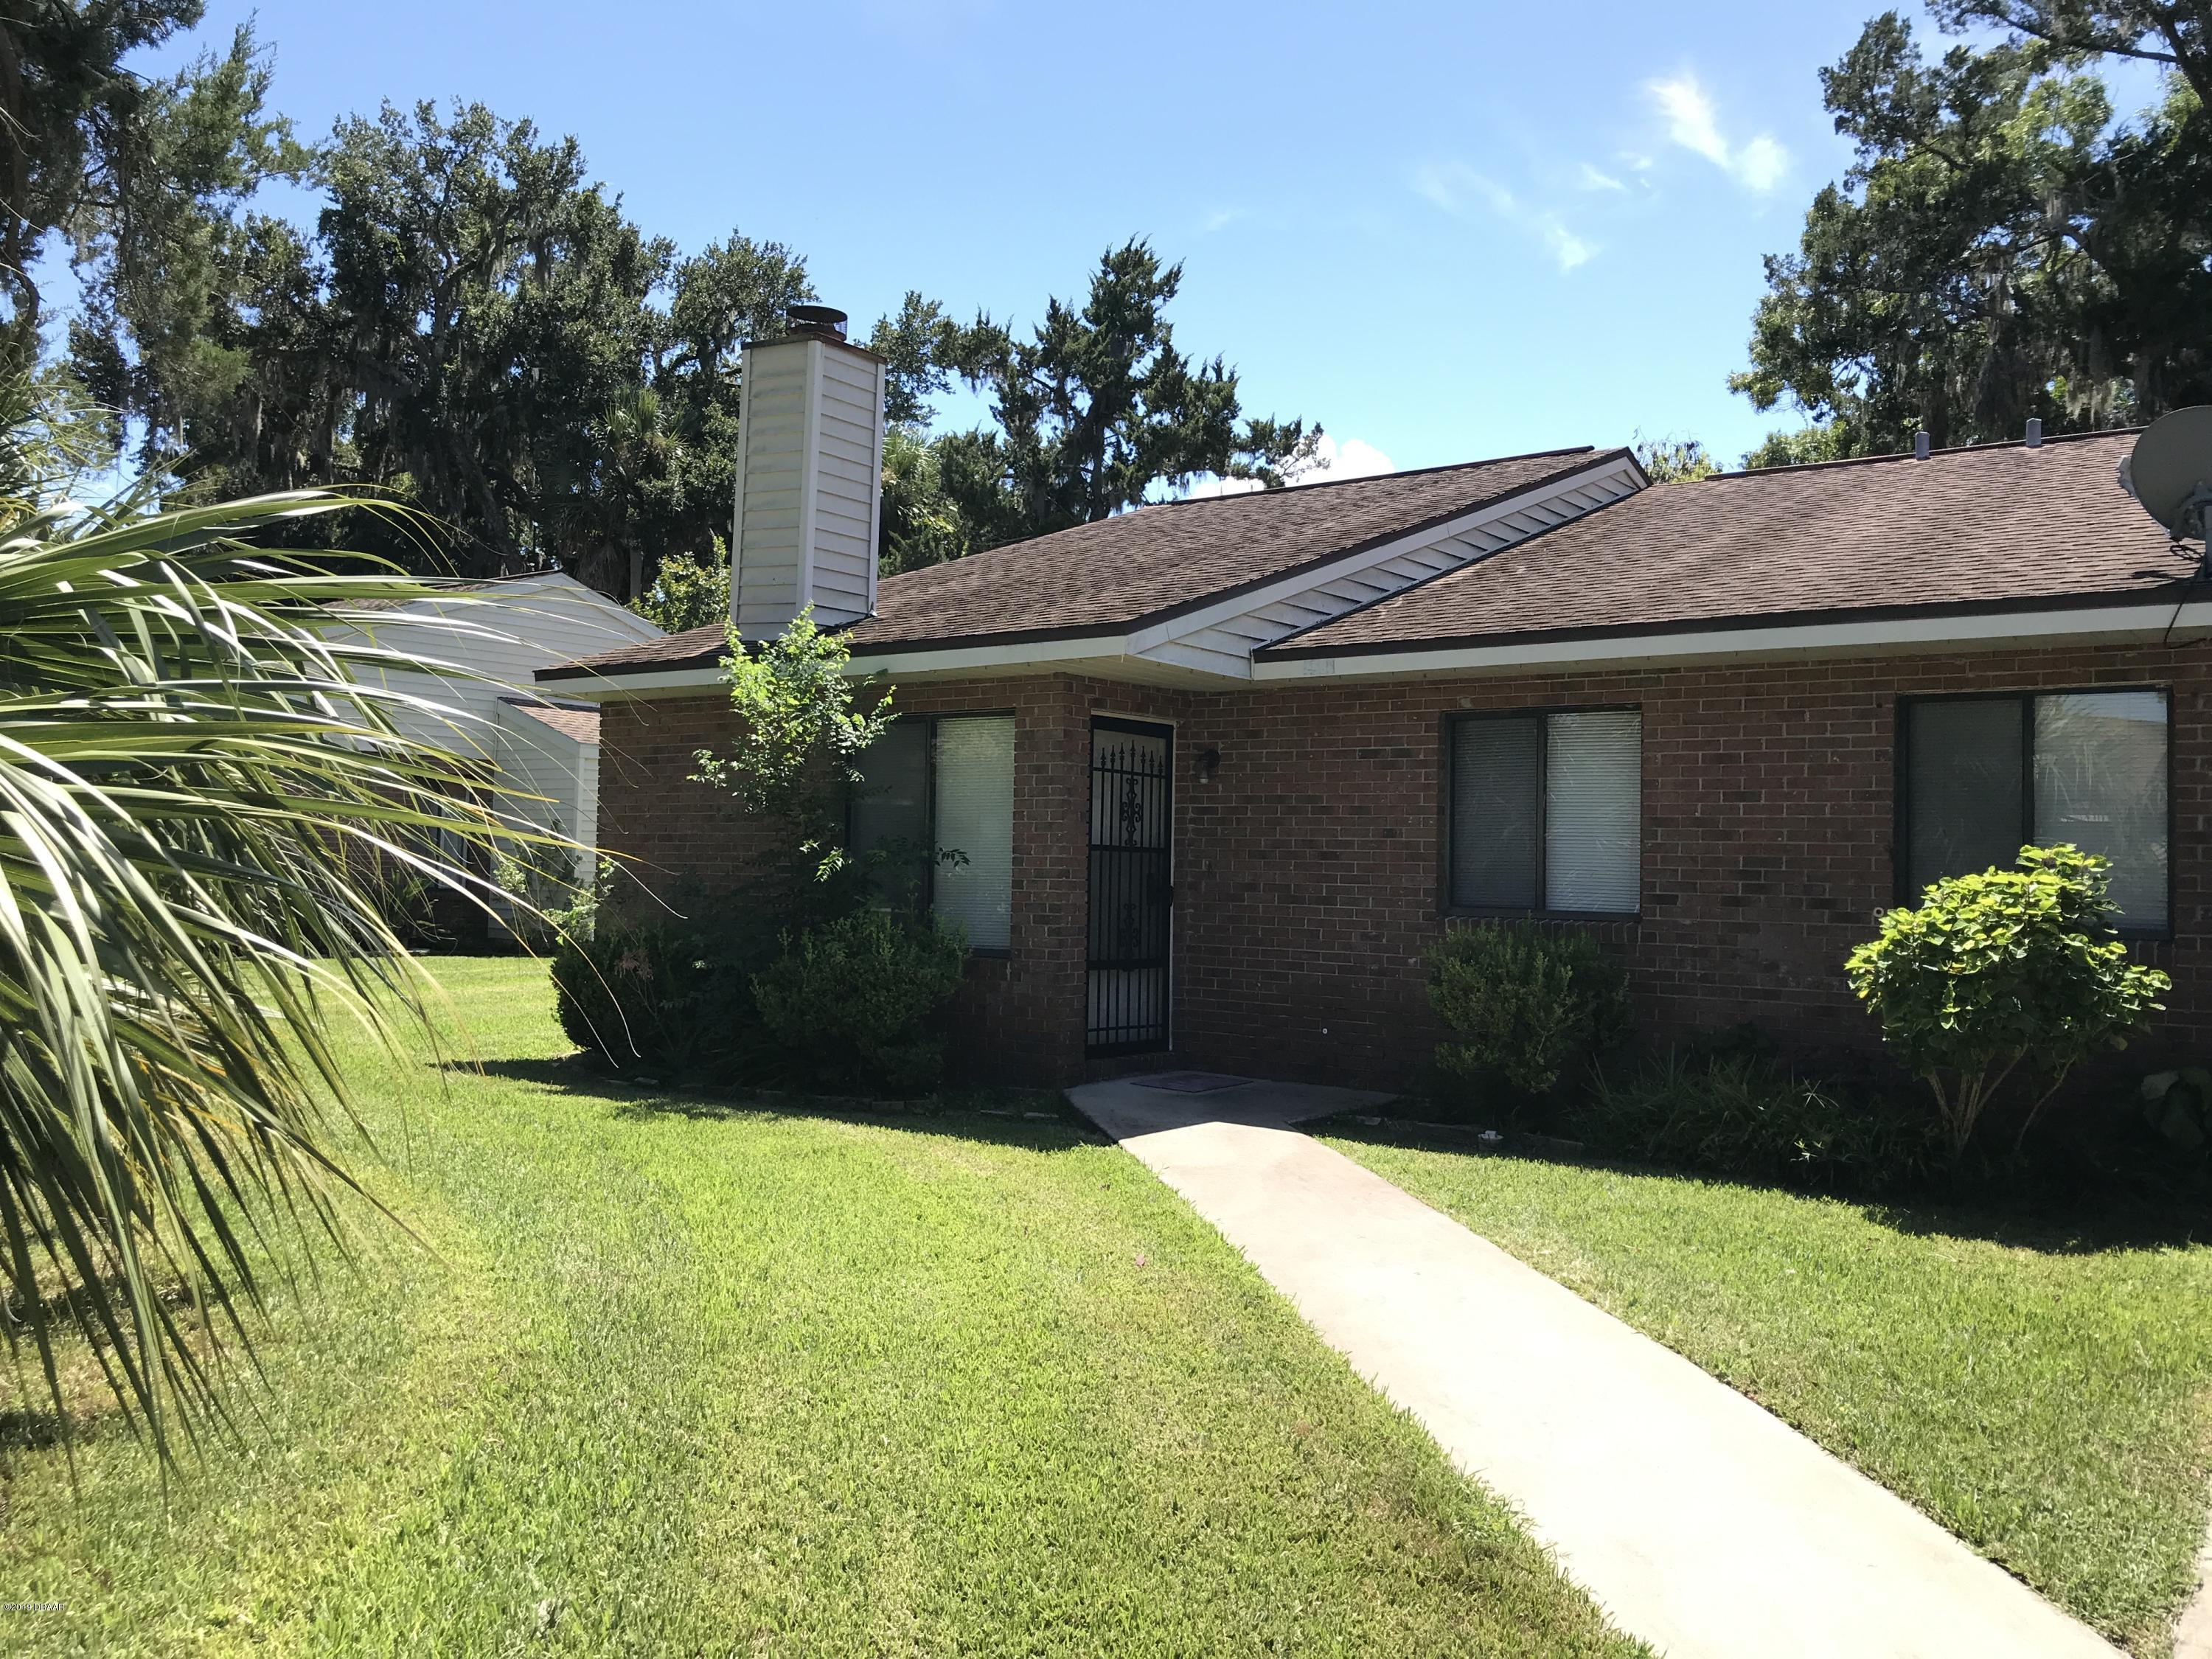 1508 Heritage Holly Hill - 1